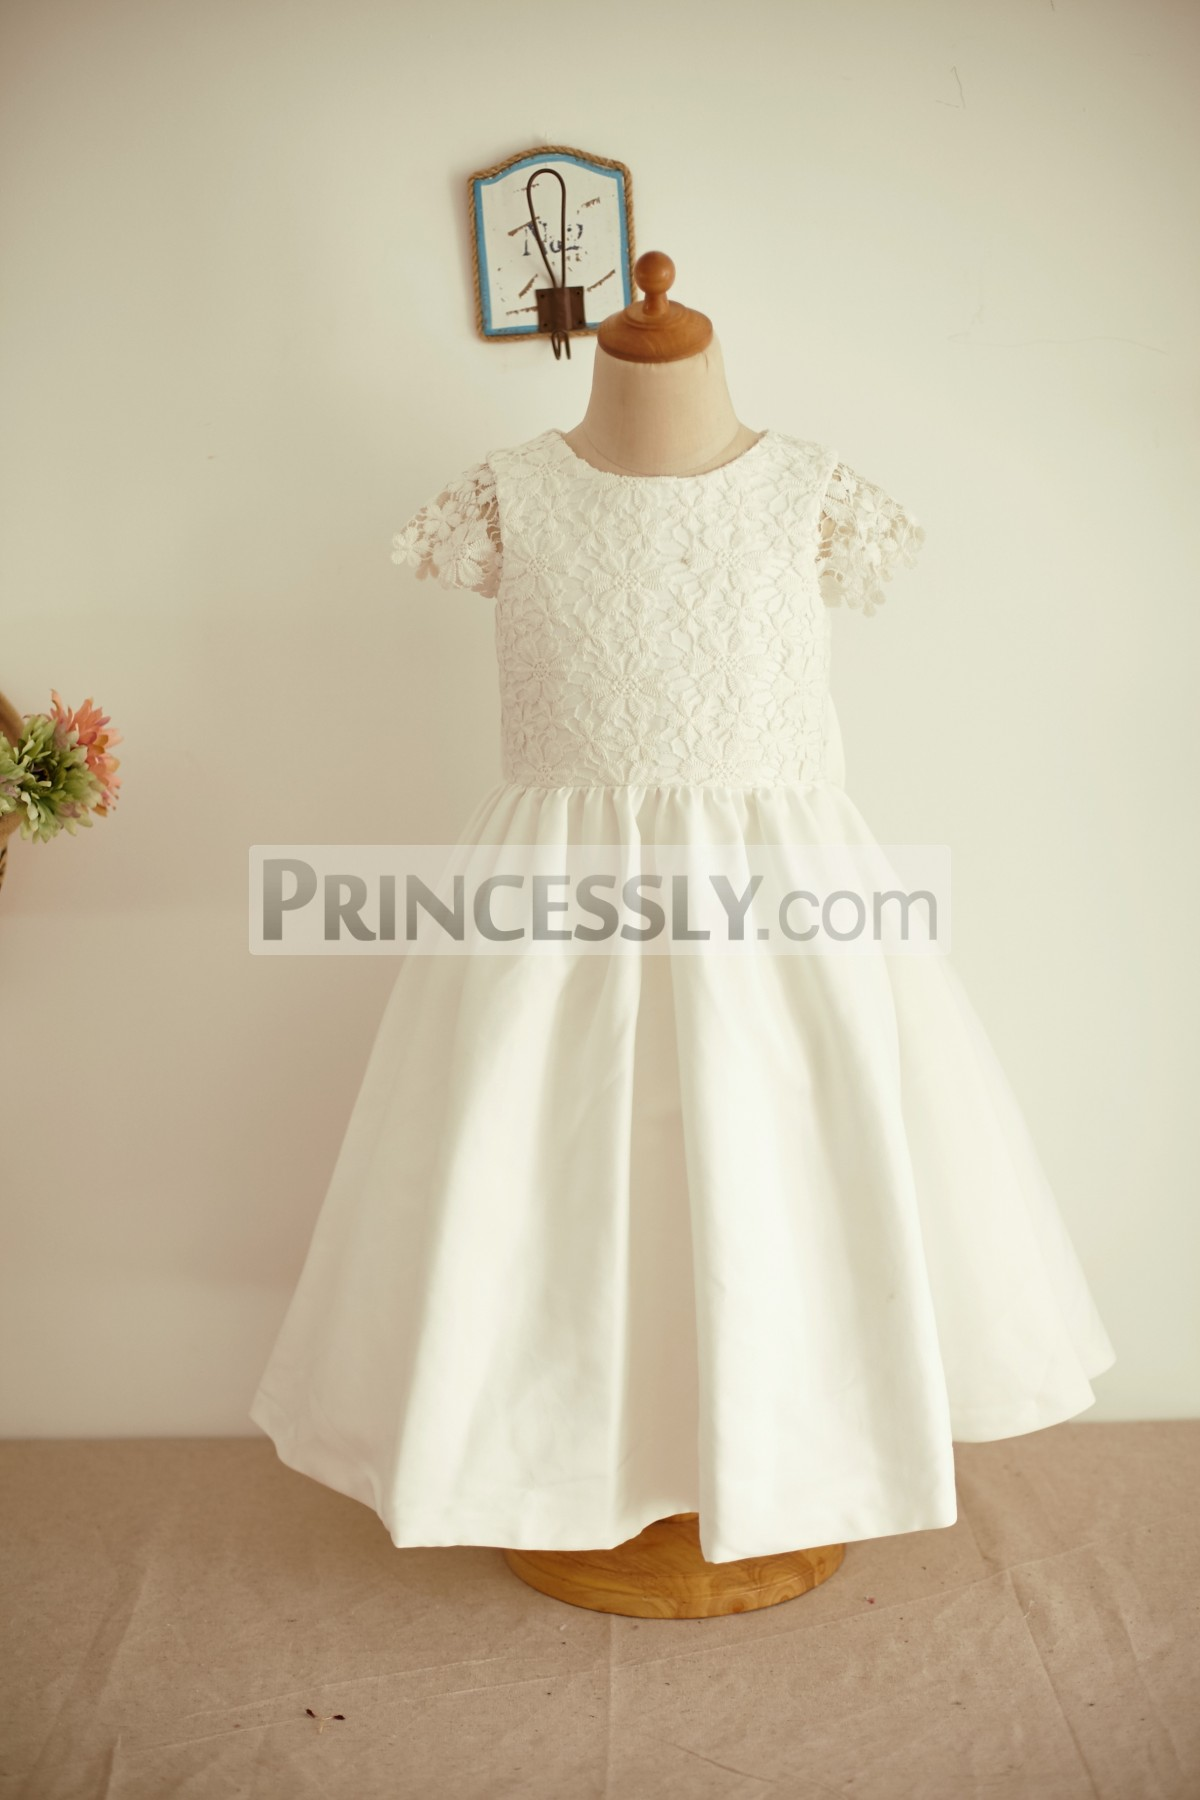 Princessly.com-K1003964-Ivory Lace Cotton Cap Sleeves Wedding Flower Girl Dress with Bow-31